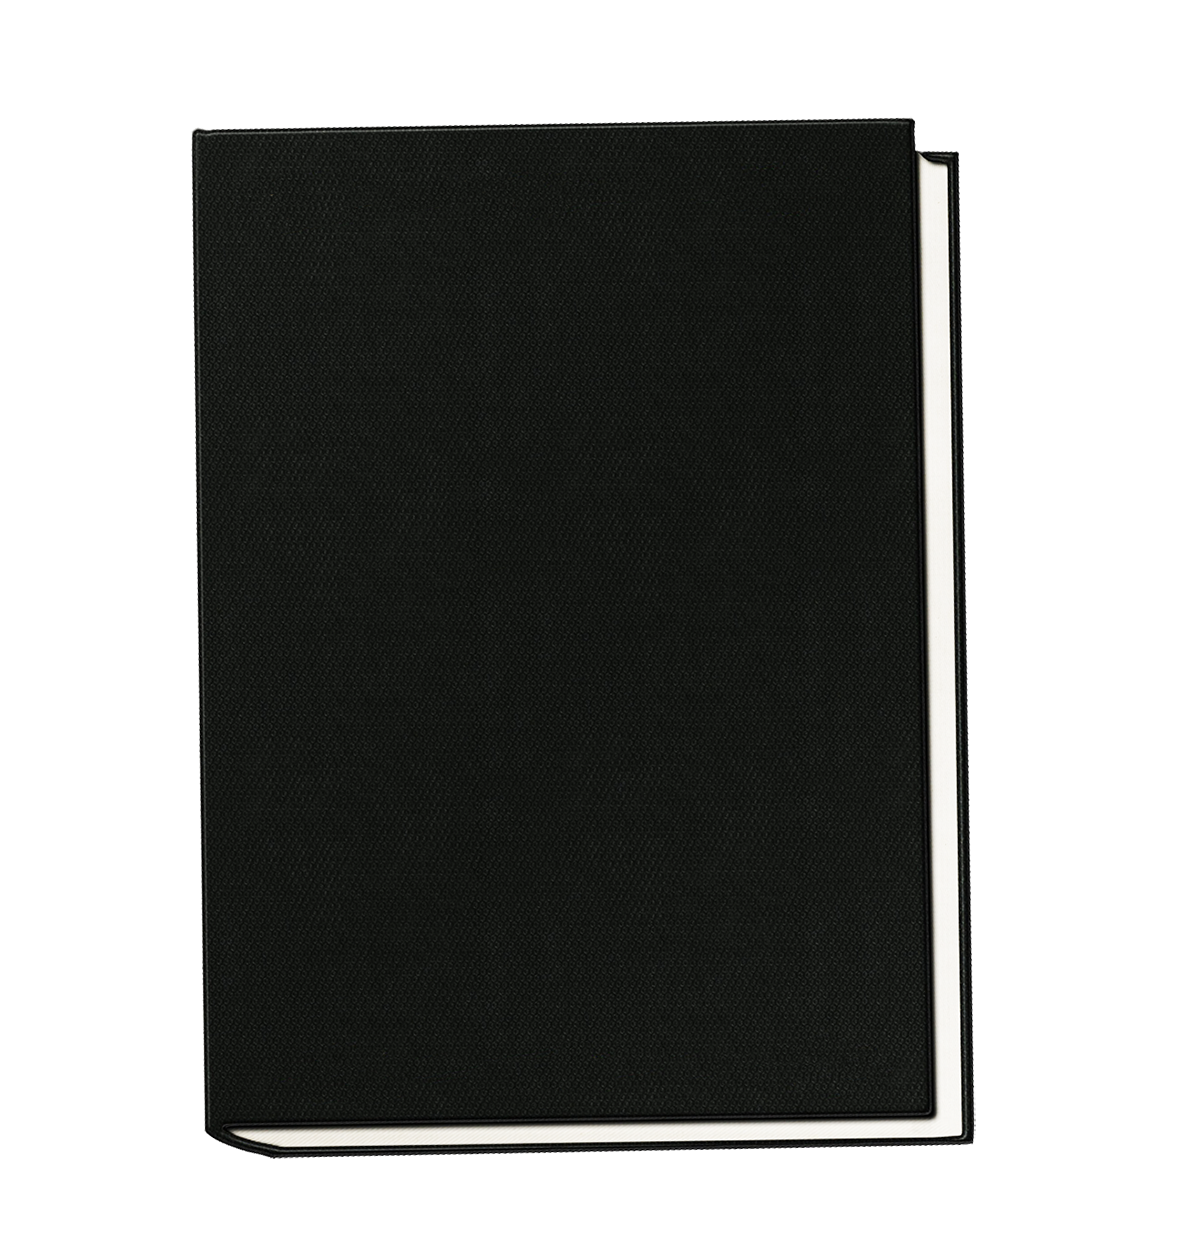 black book without decorations